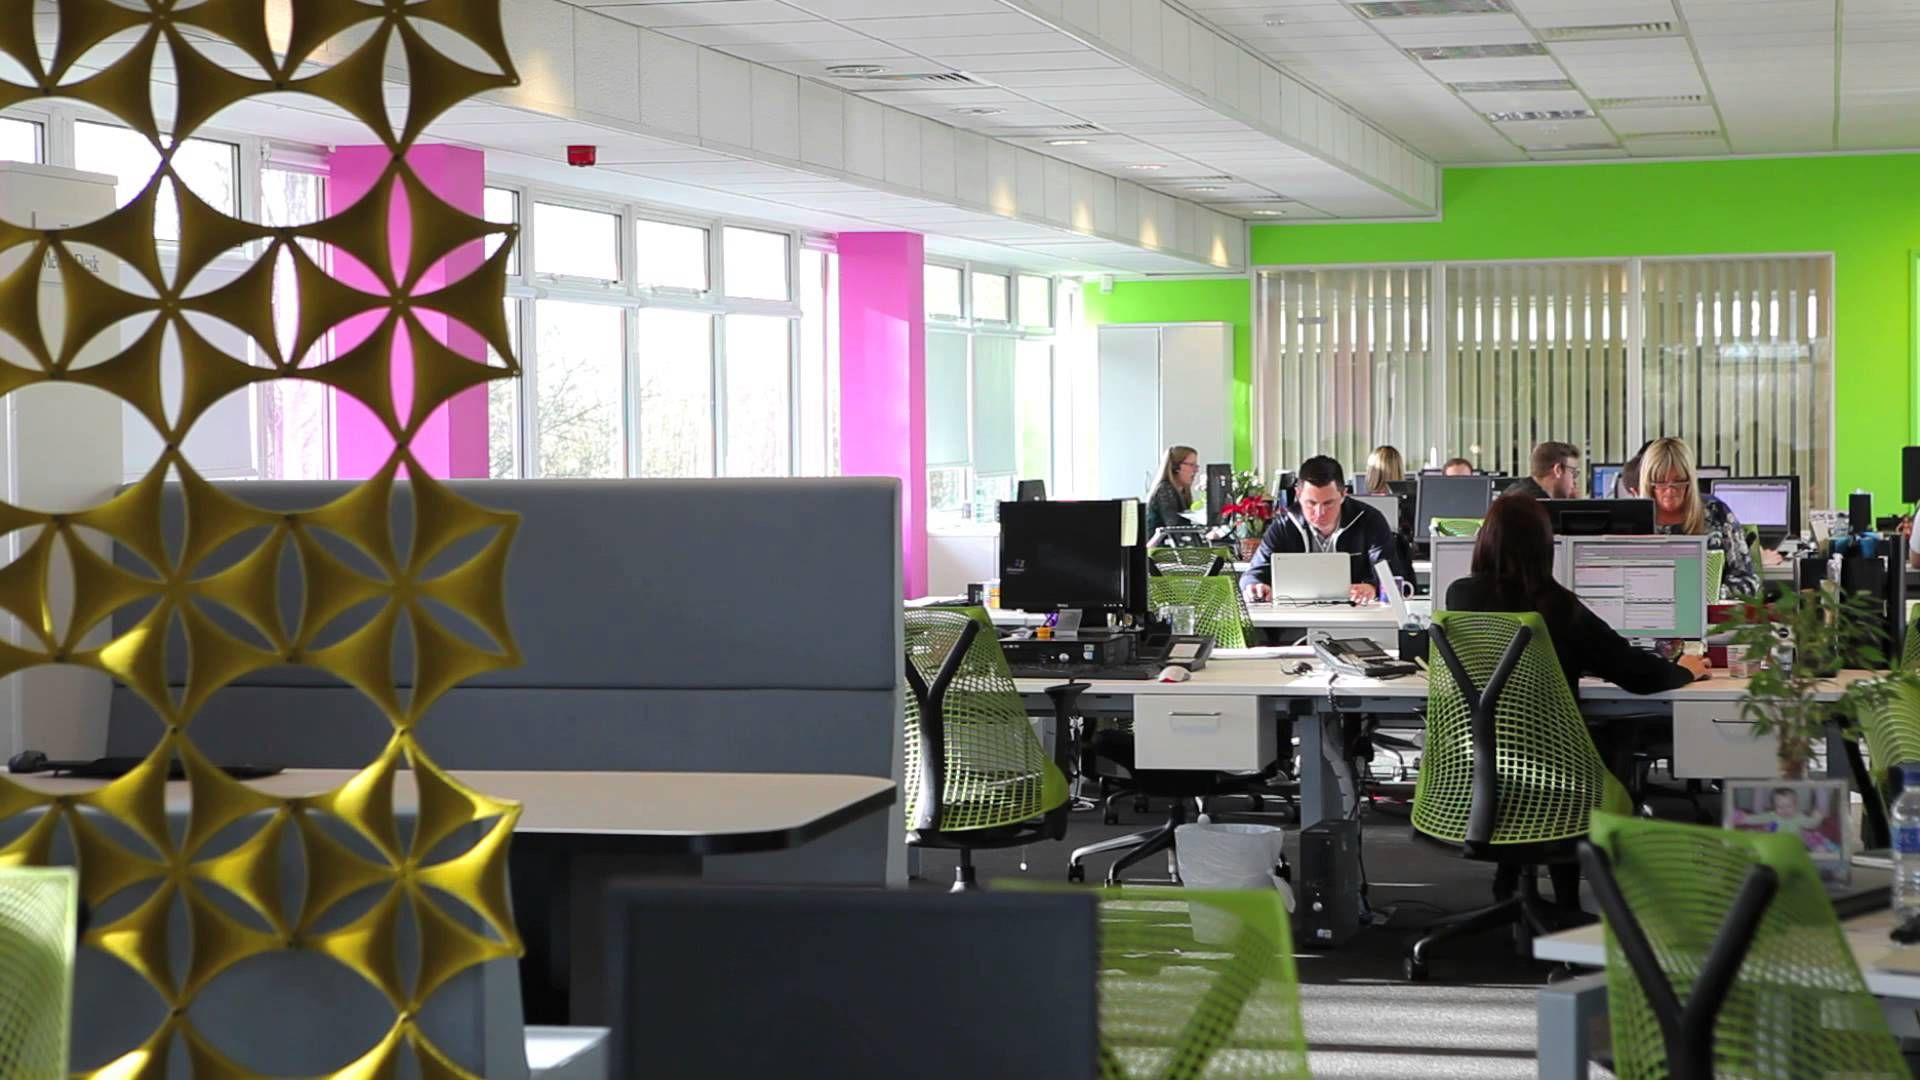 office setup ideas work. Explore Cool Office, Creative Office Space, And More! Open Work Space Layout Setup Ideas